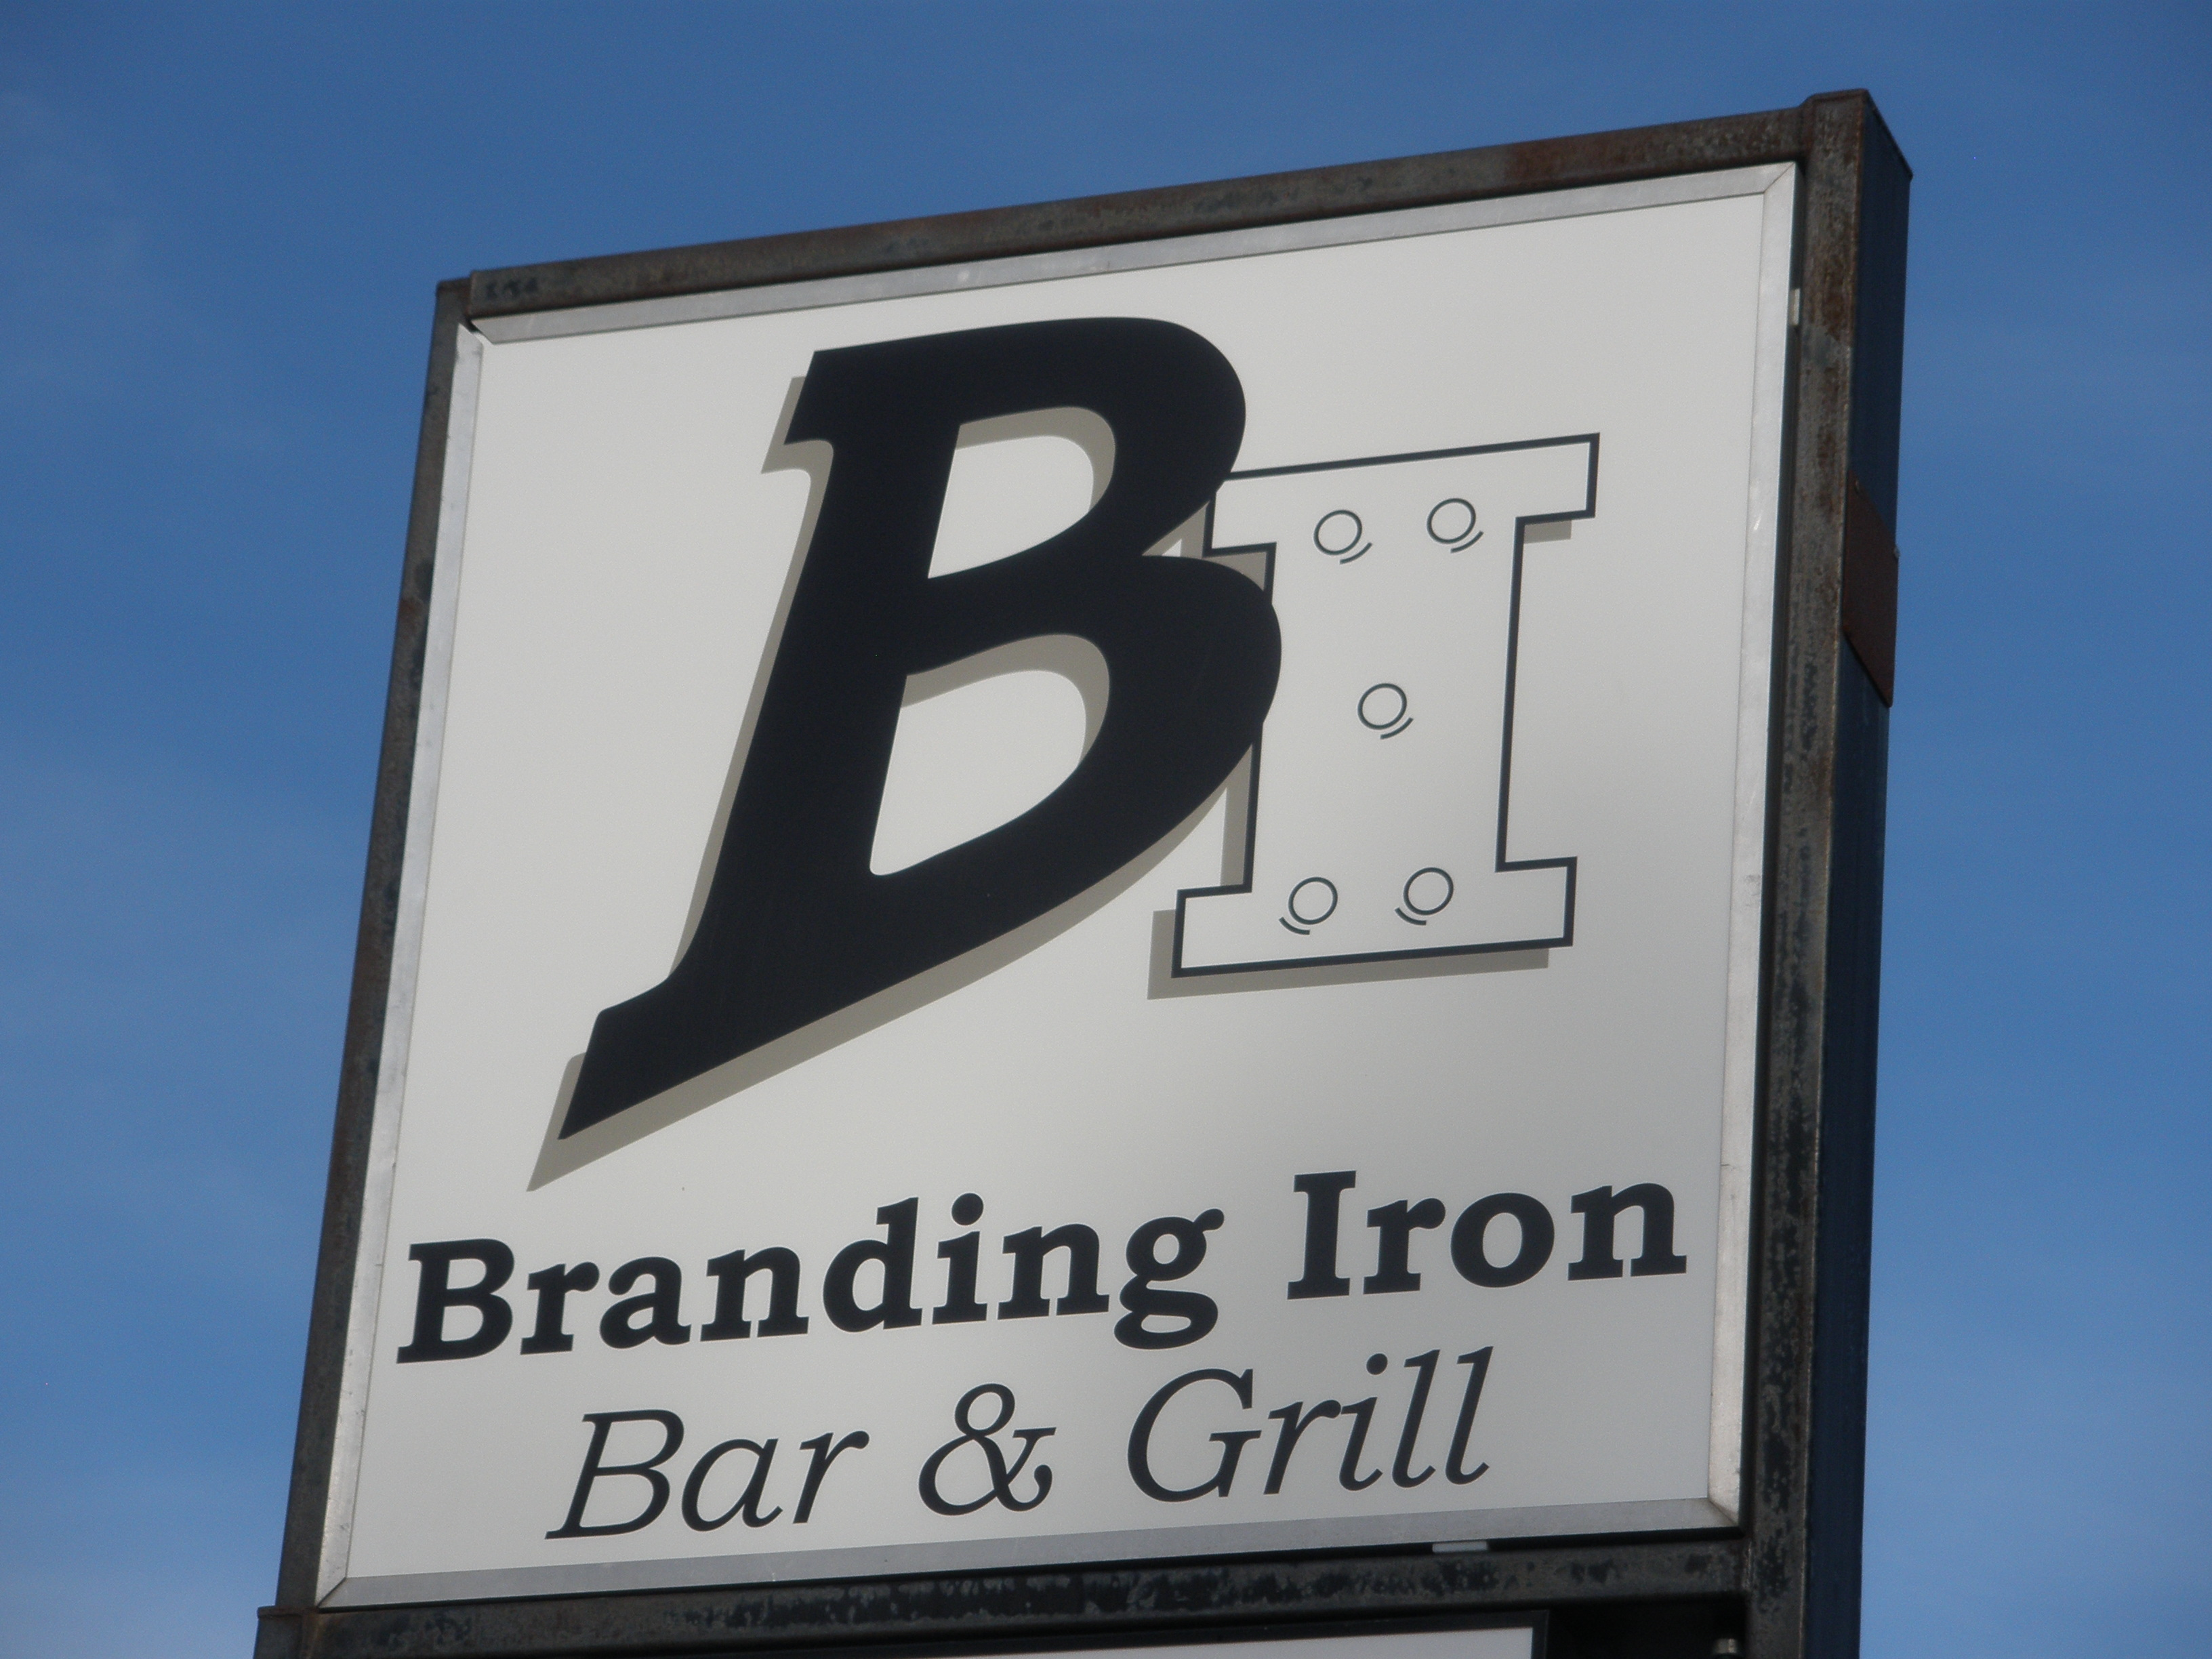 Branding Iron Bar & Grill (formerly Steakhouse)